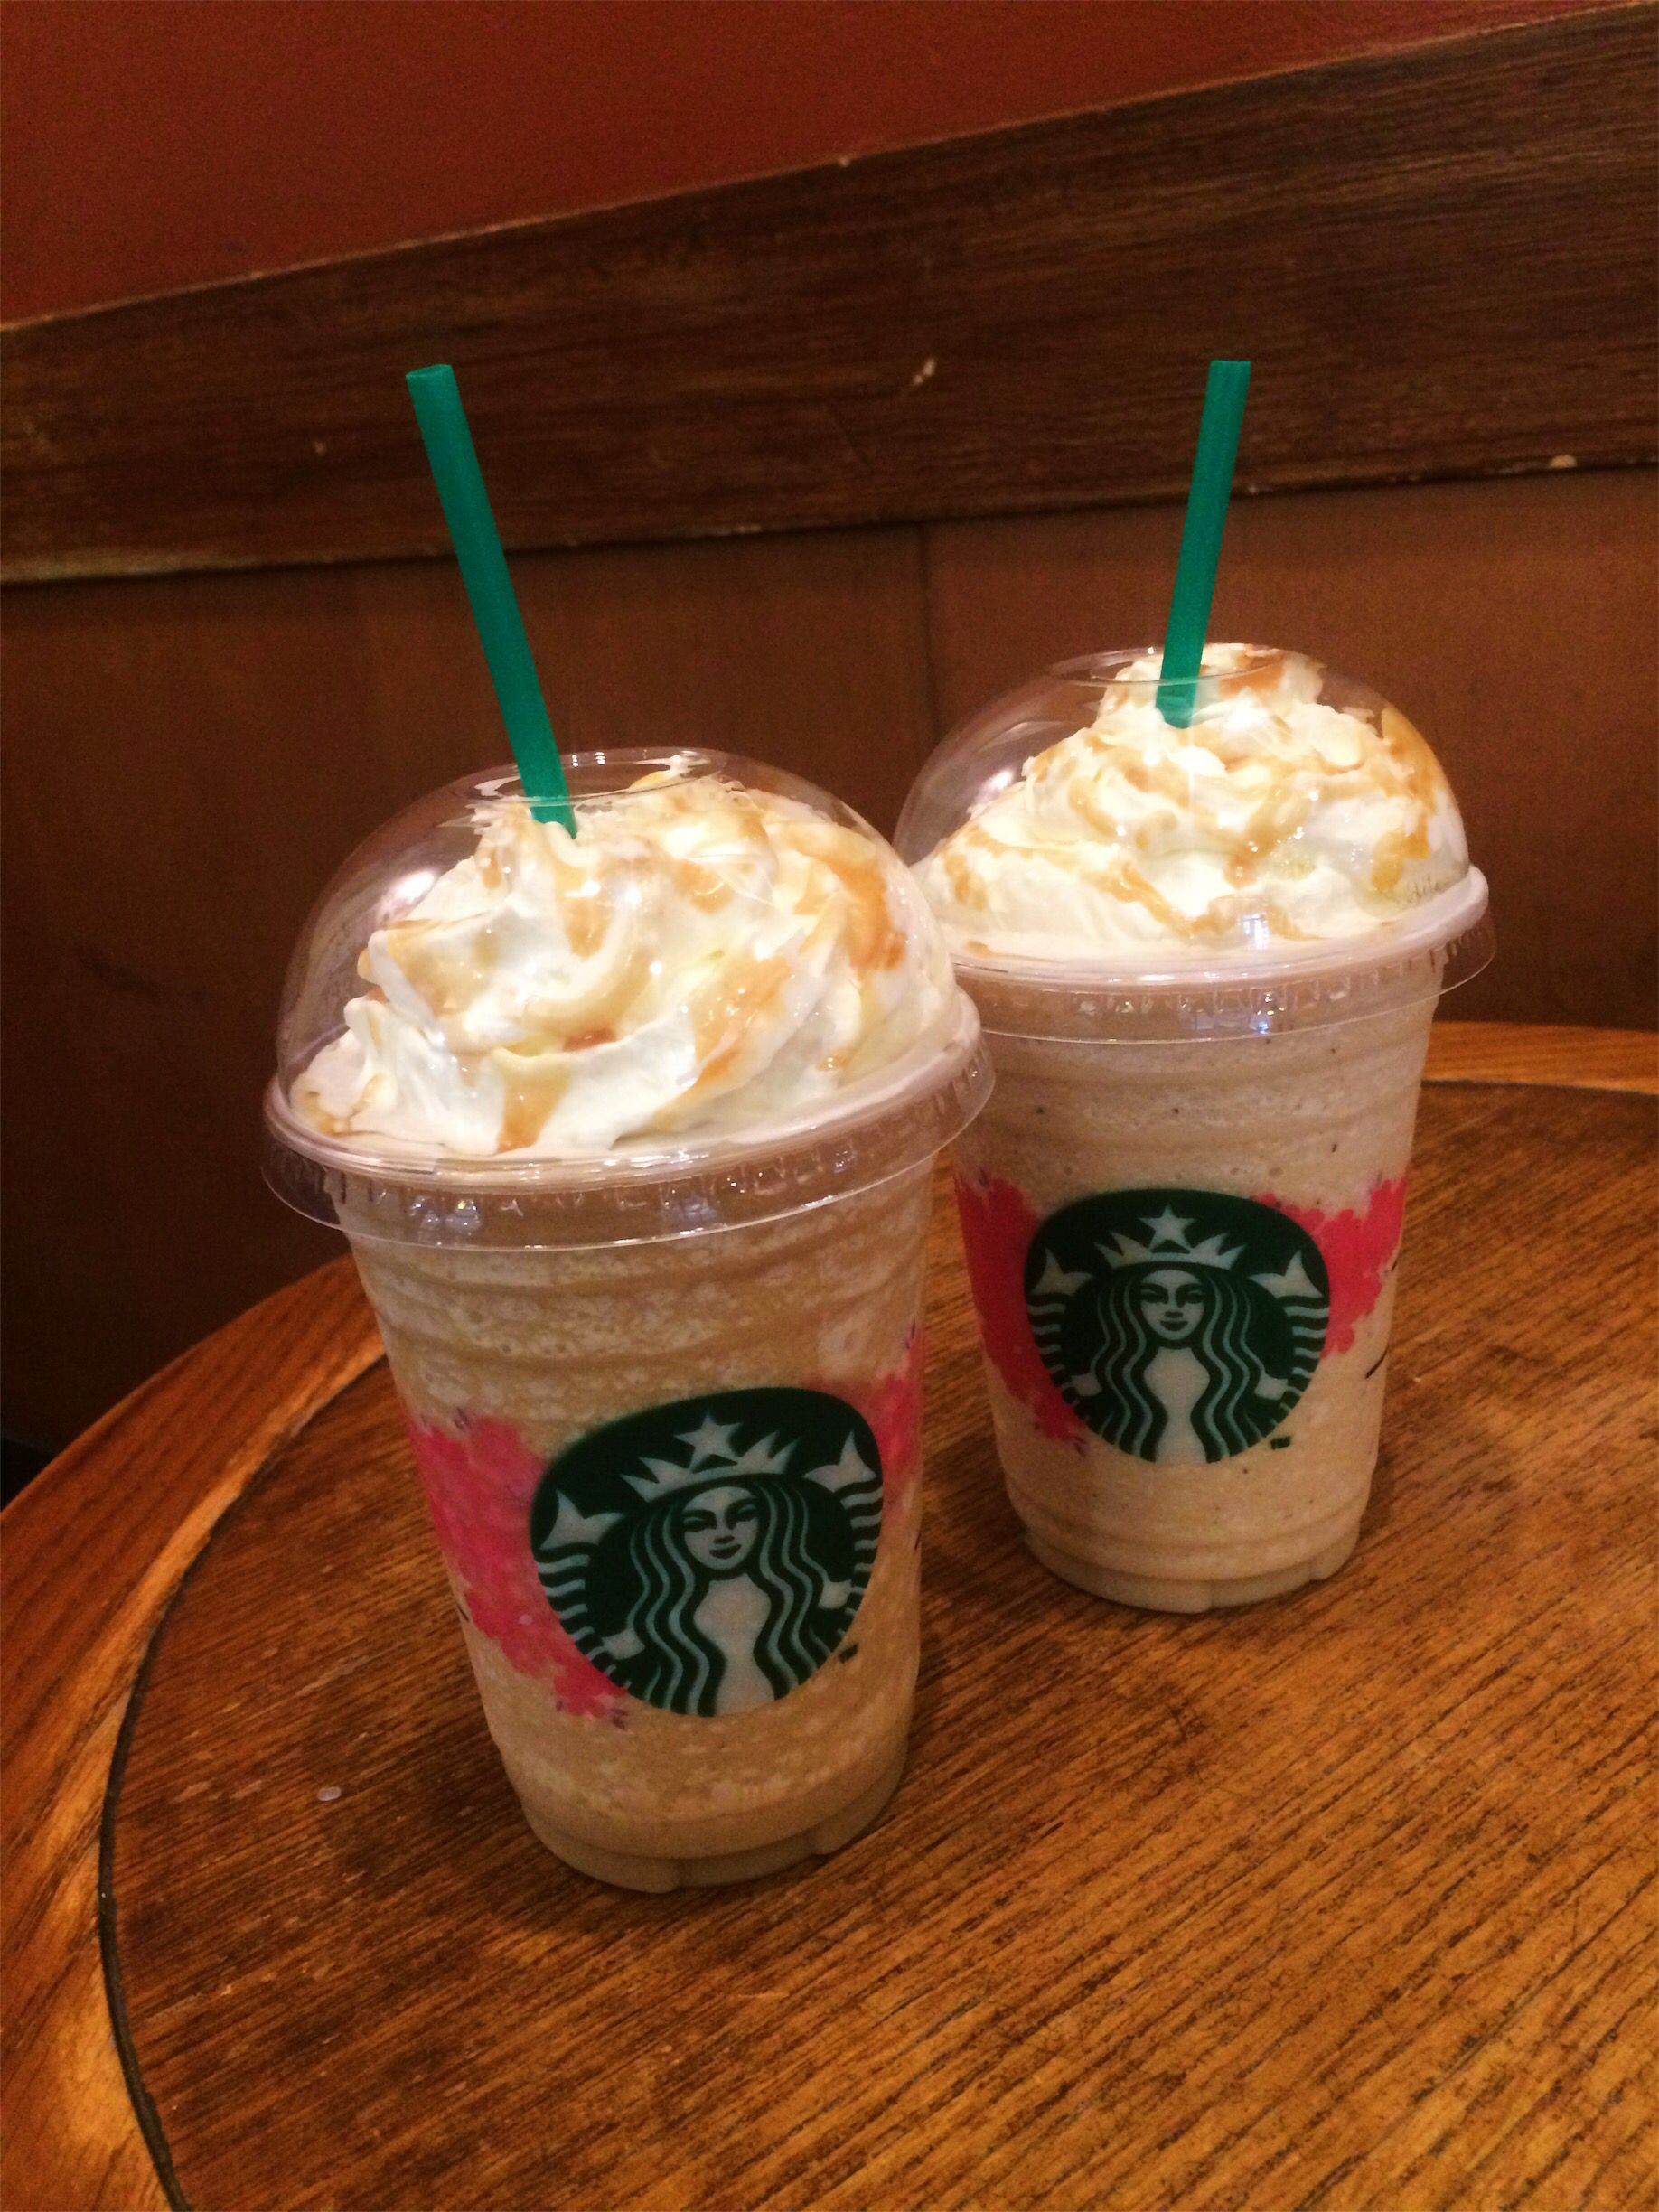 Sip 'n Go with Starbucks Philippines' new Frappuccinos